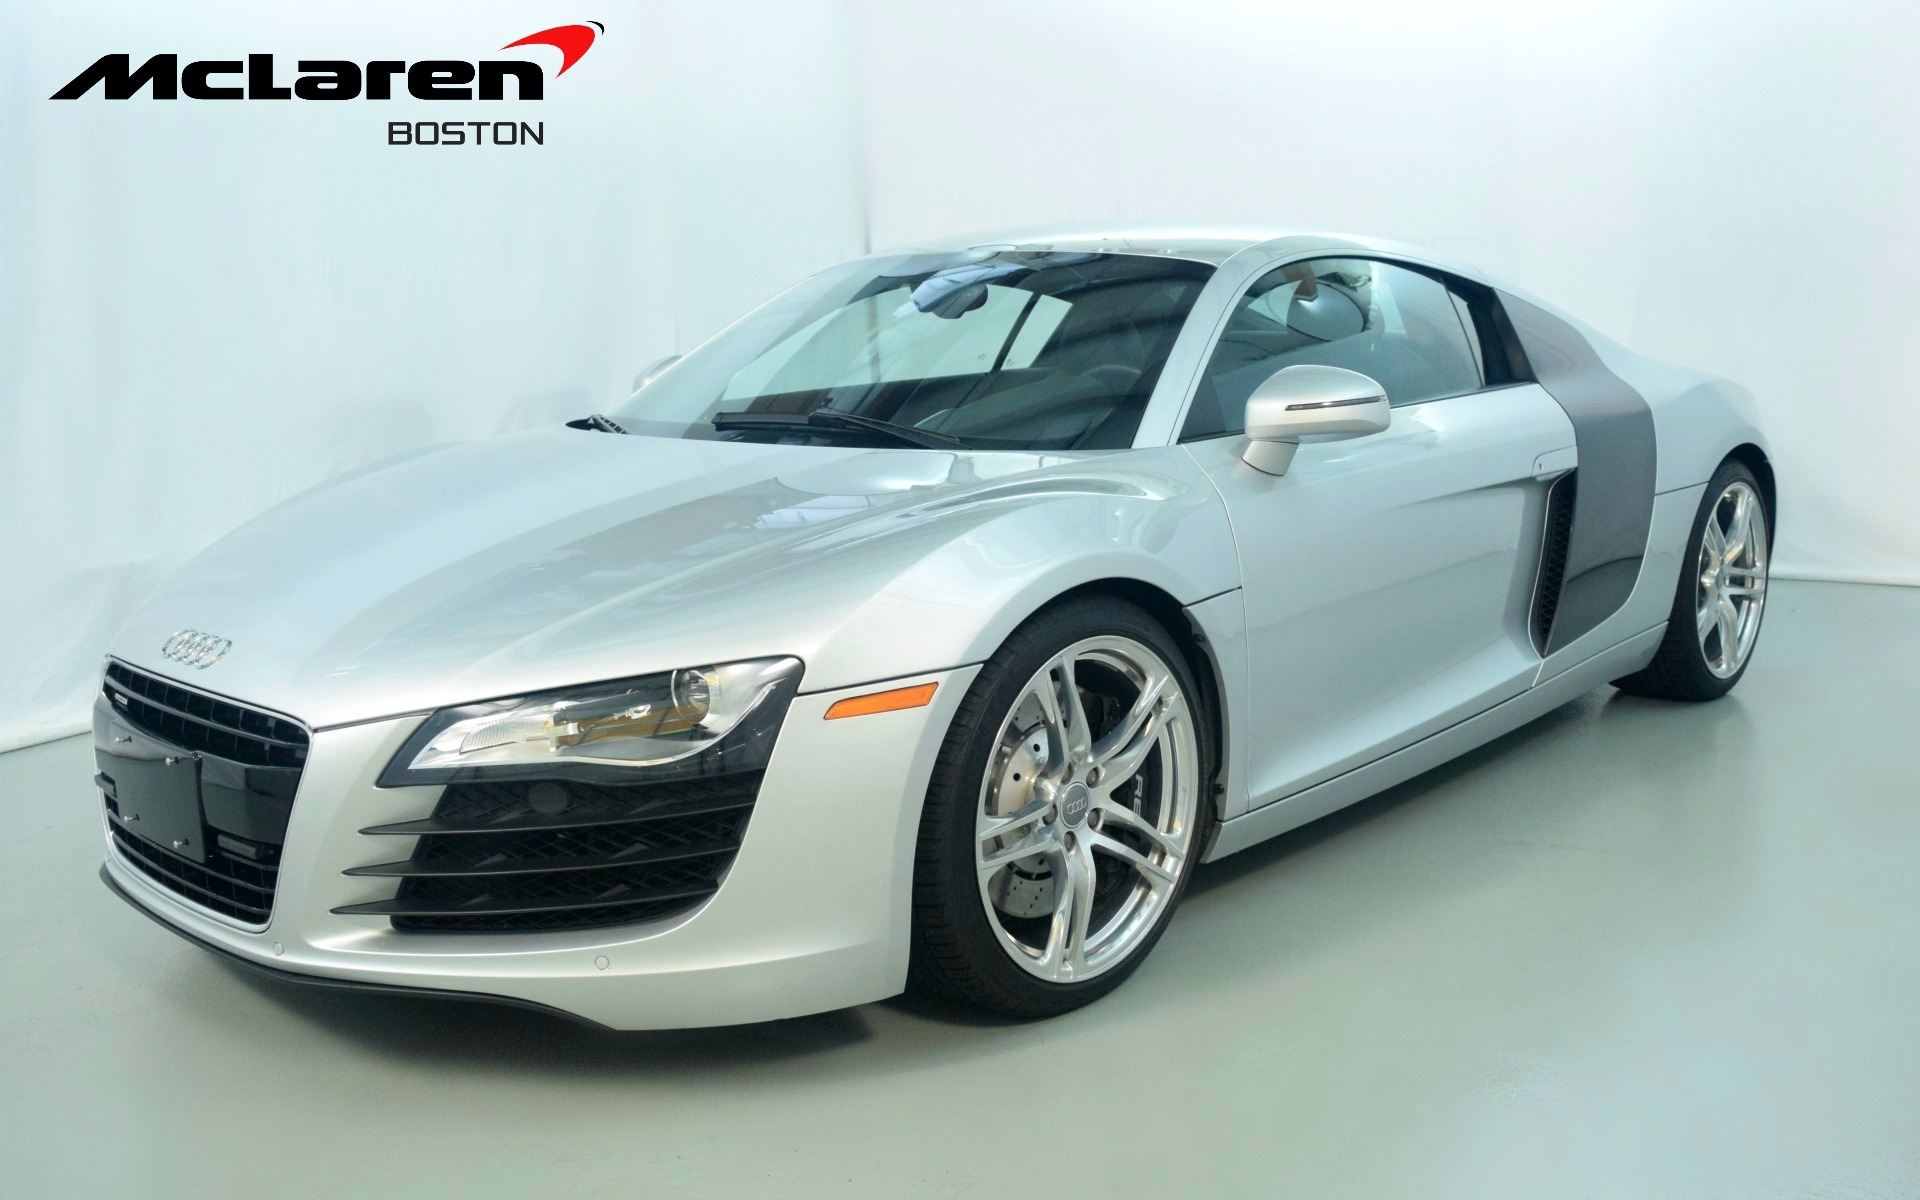 2009 audi r8 4 2l for sale in norwell ma 002946 mclaren. Black Bedroom Furniture Sets. Home Design Ideas